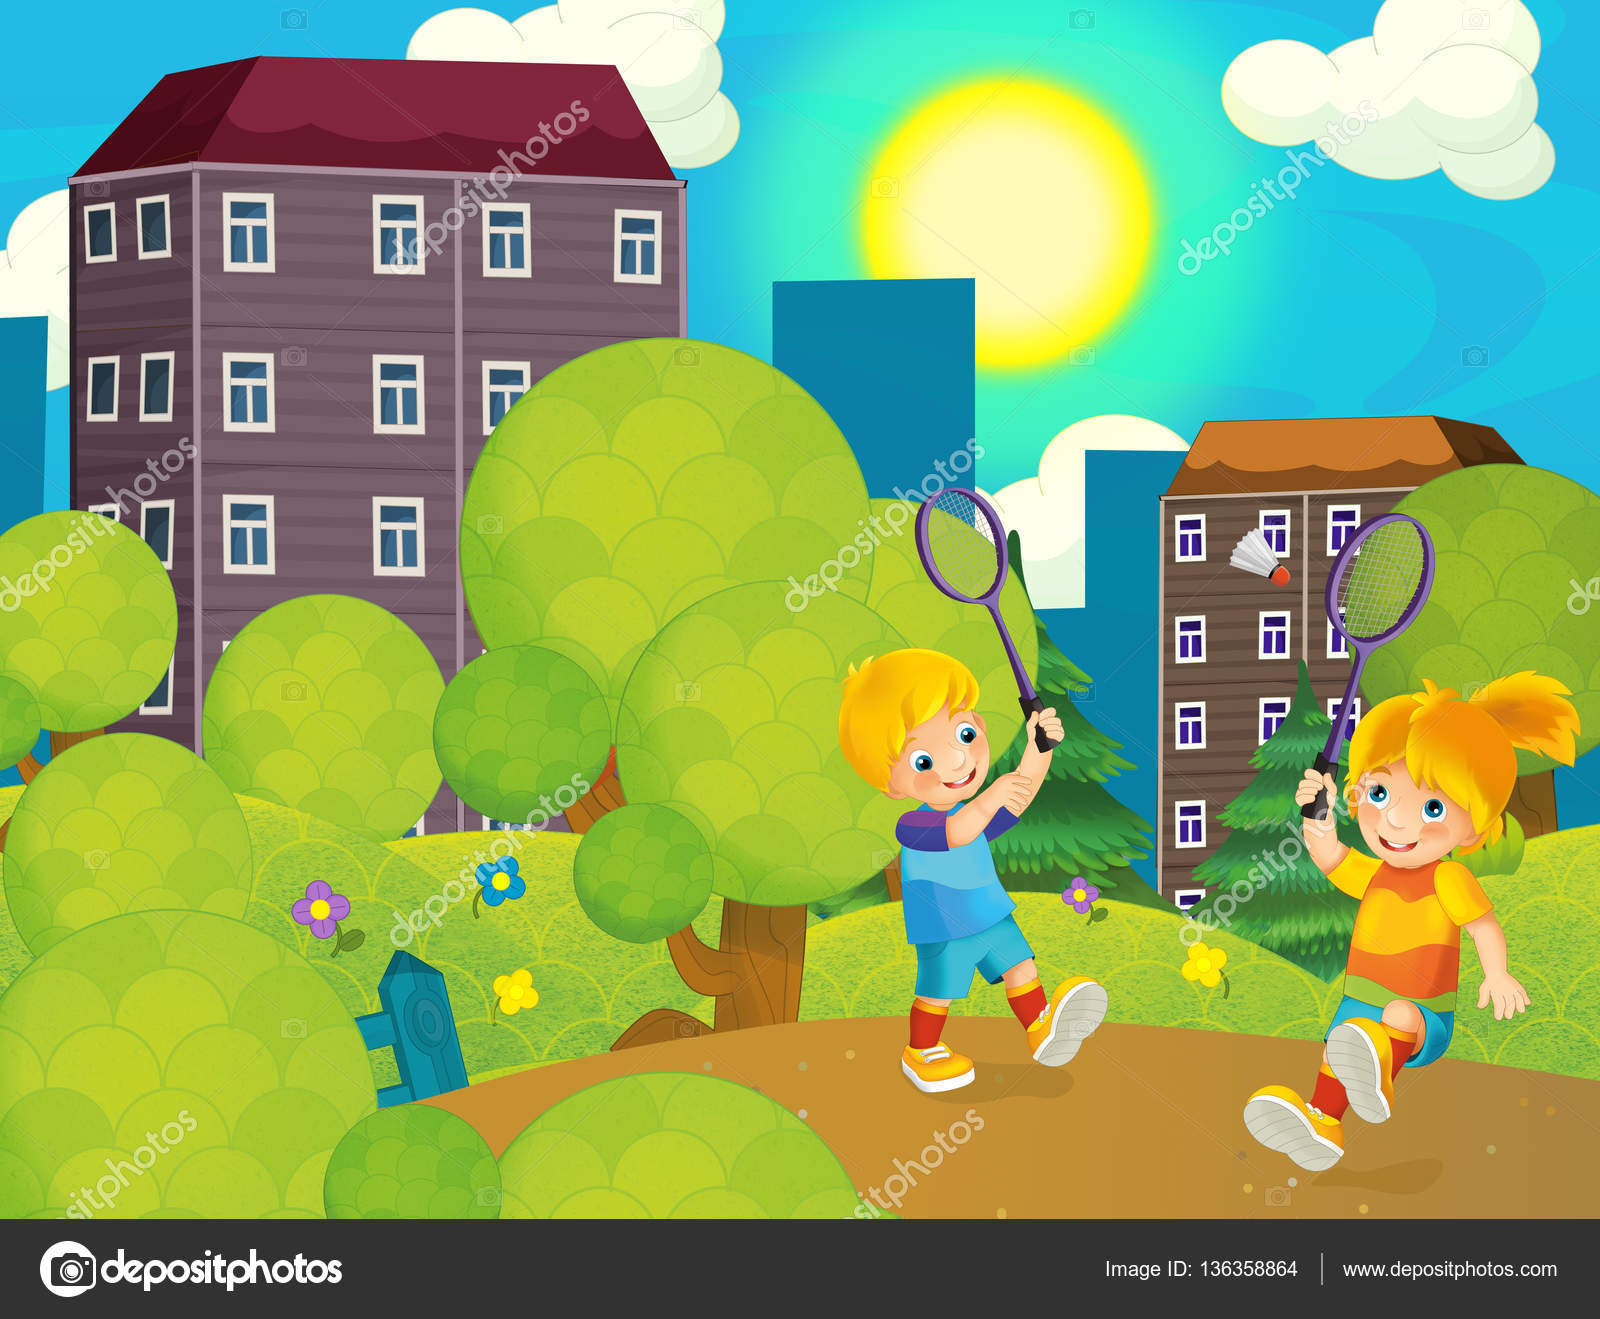 Cartoon Scene With Kids Playing Tennis In The Park